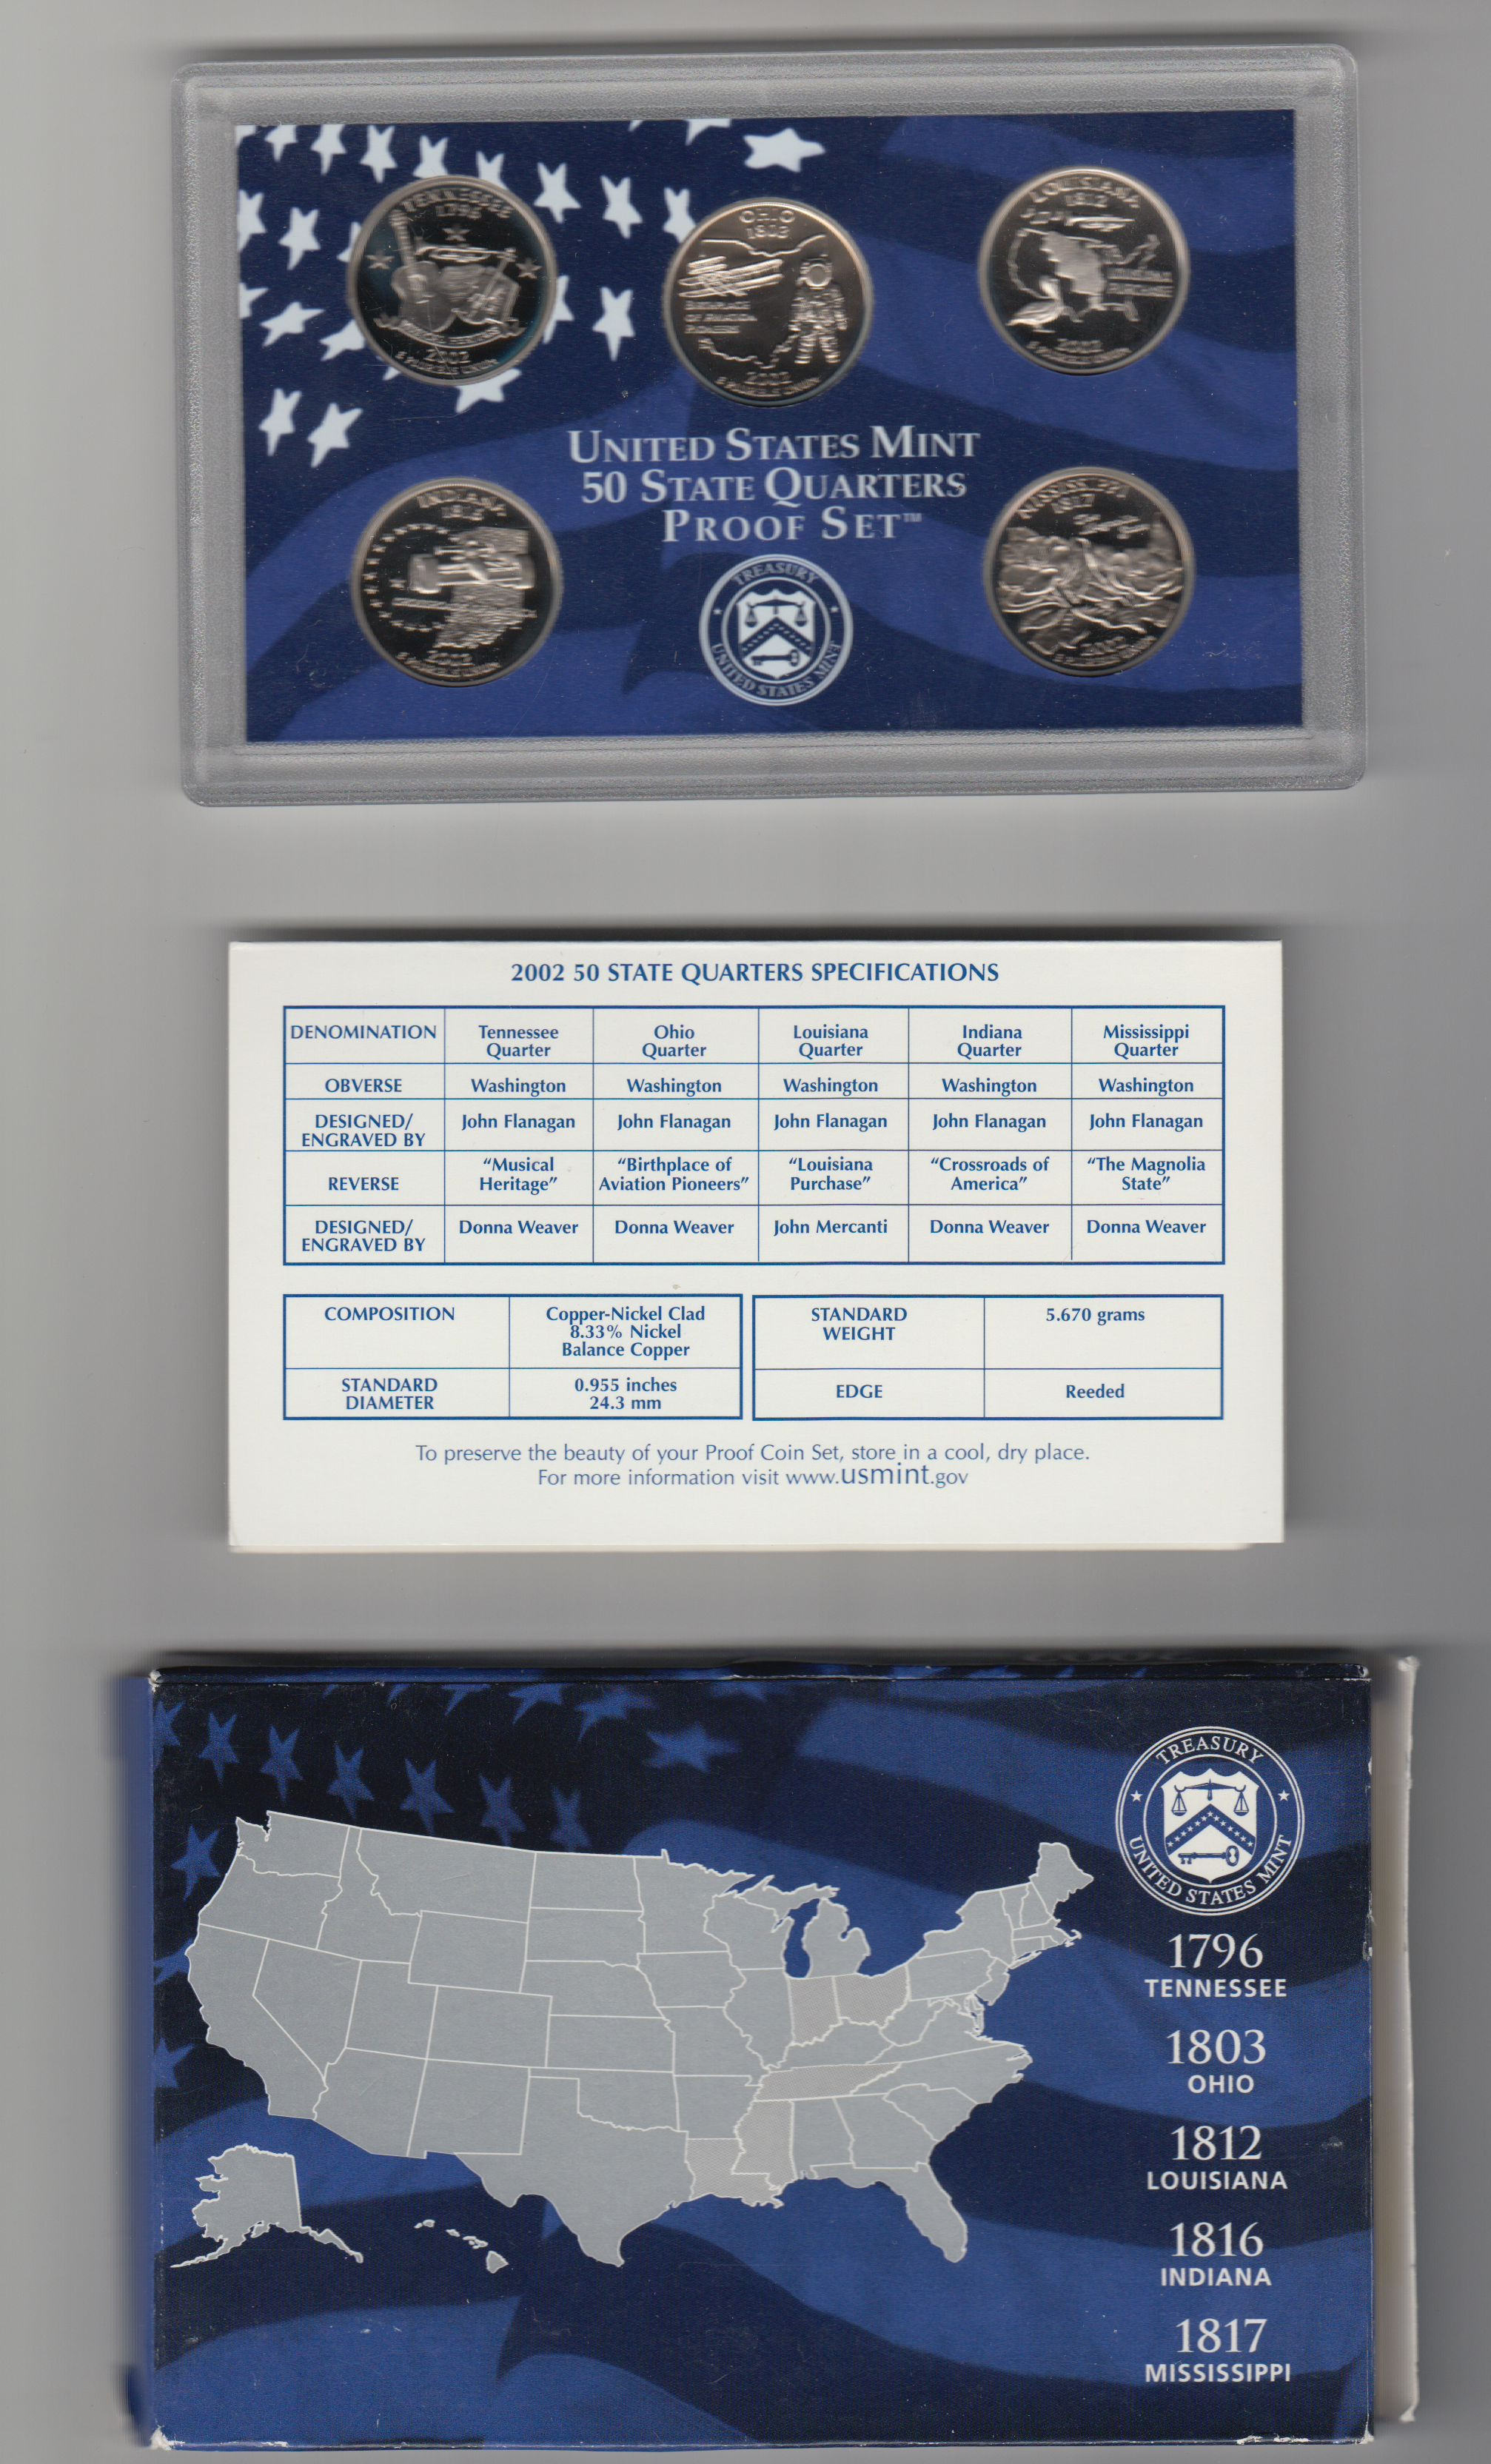 Best Of Value Of Usa 5 Coins 50 State Quarters Proof Set U S State Quarter Set Value Of Luxury Mint Statehood Quarter Errors State Quarter Set Value